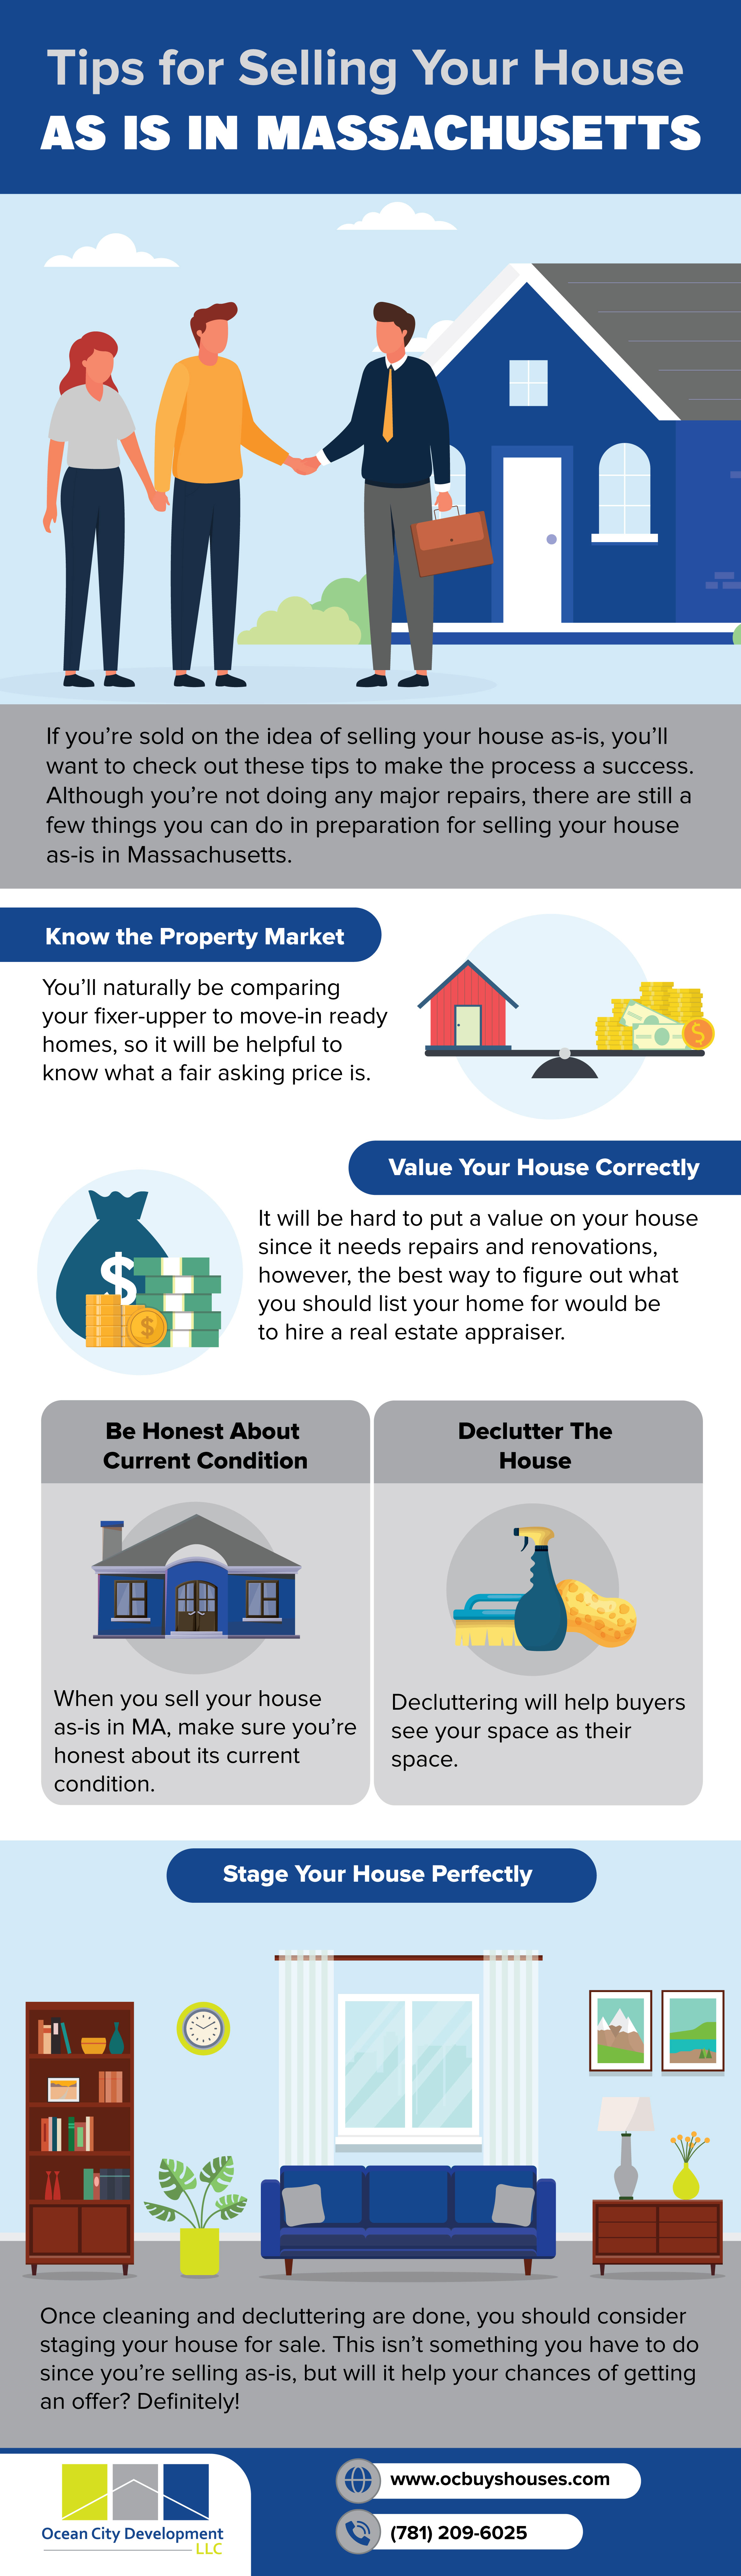 Tips for selling your house as is in Massachusetts